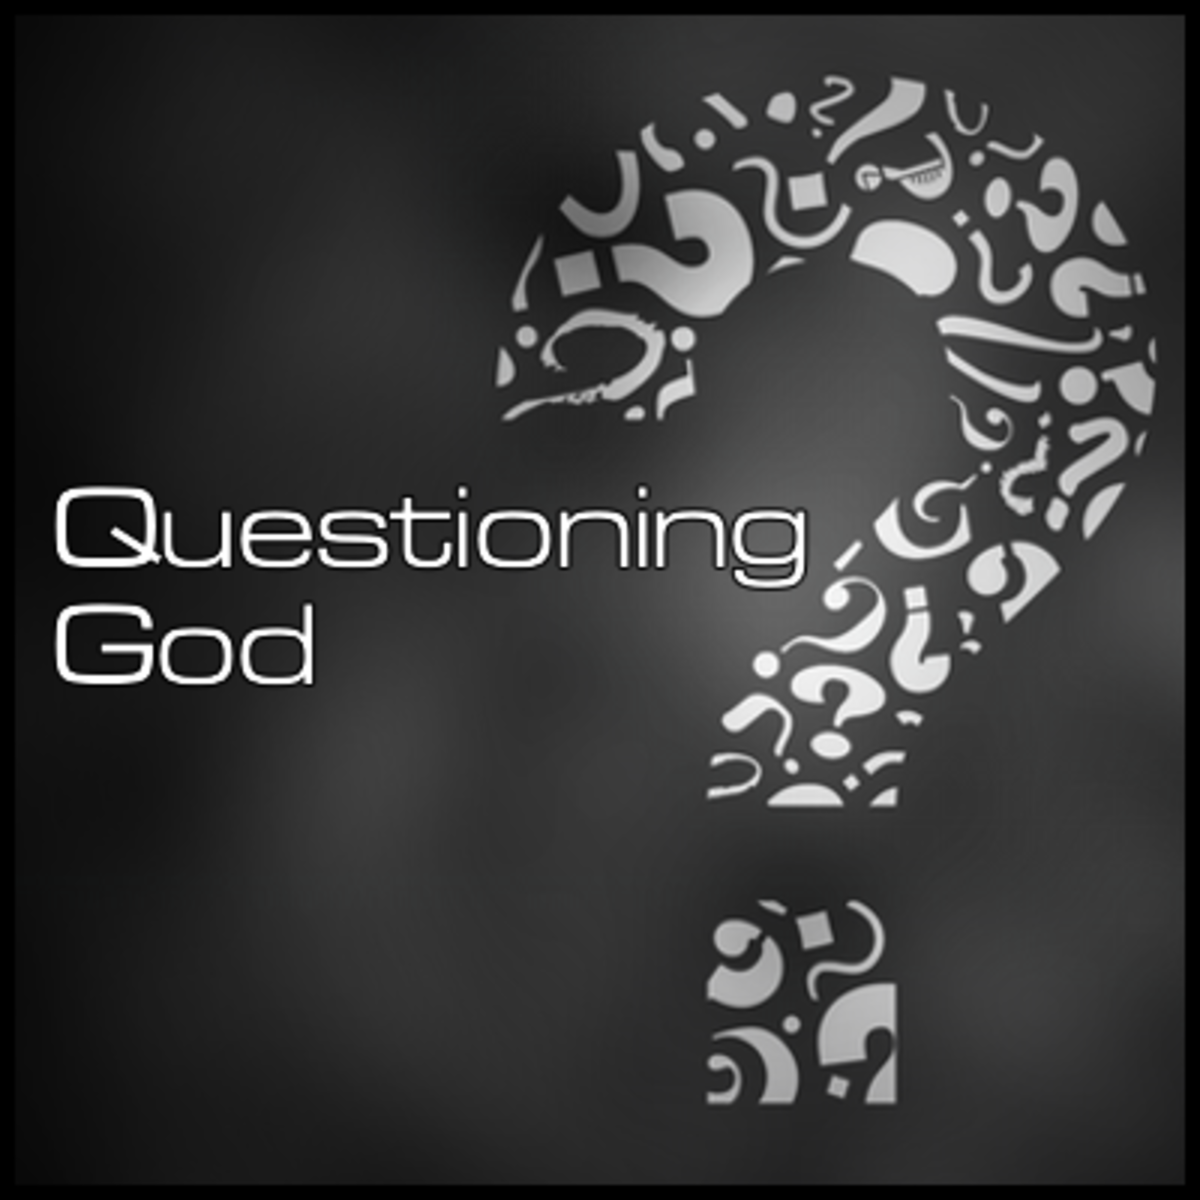 Is It Wrong to Question God?